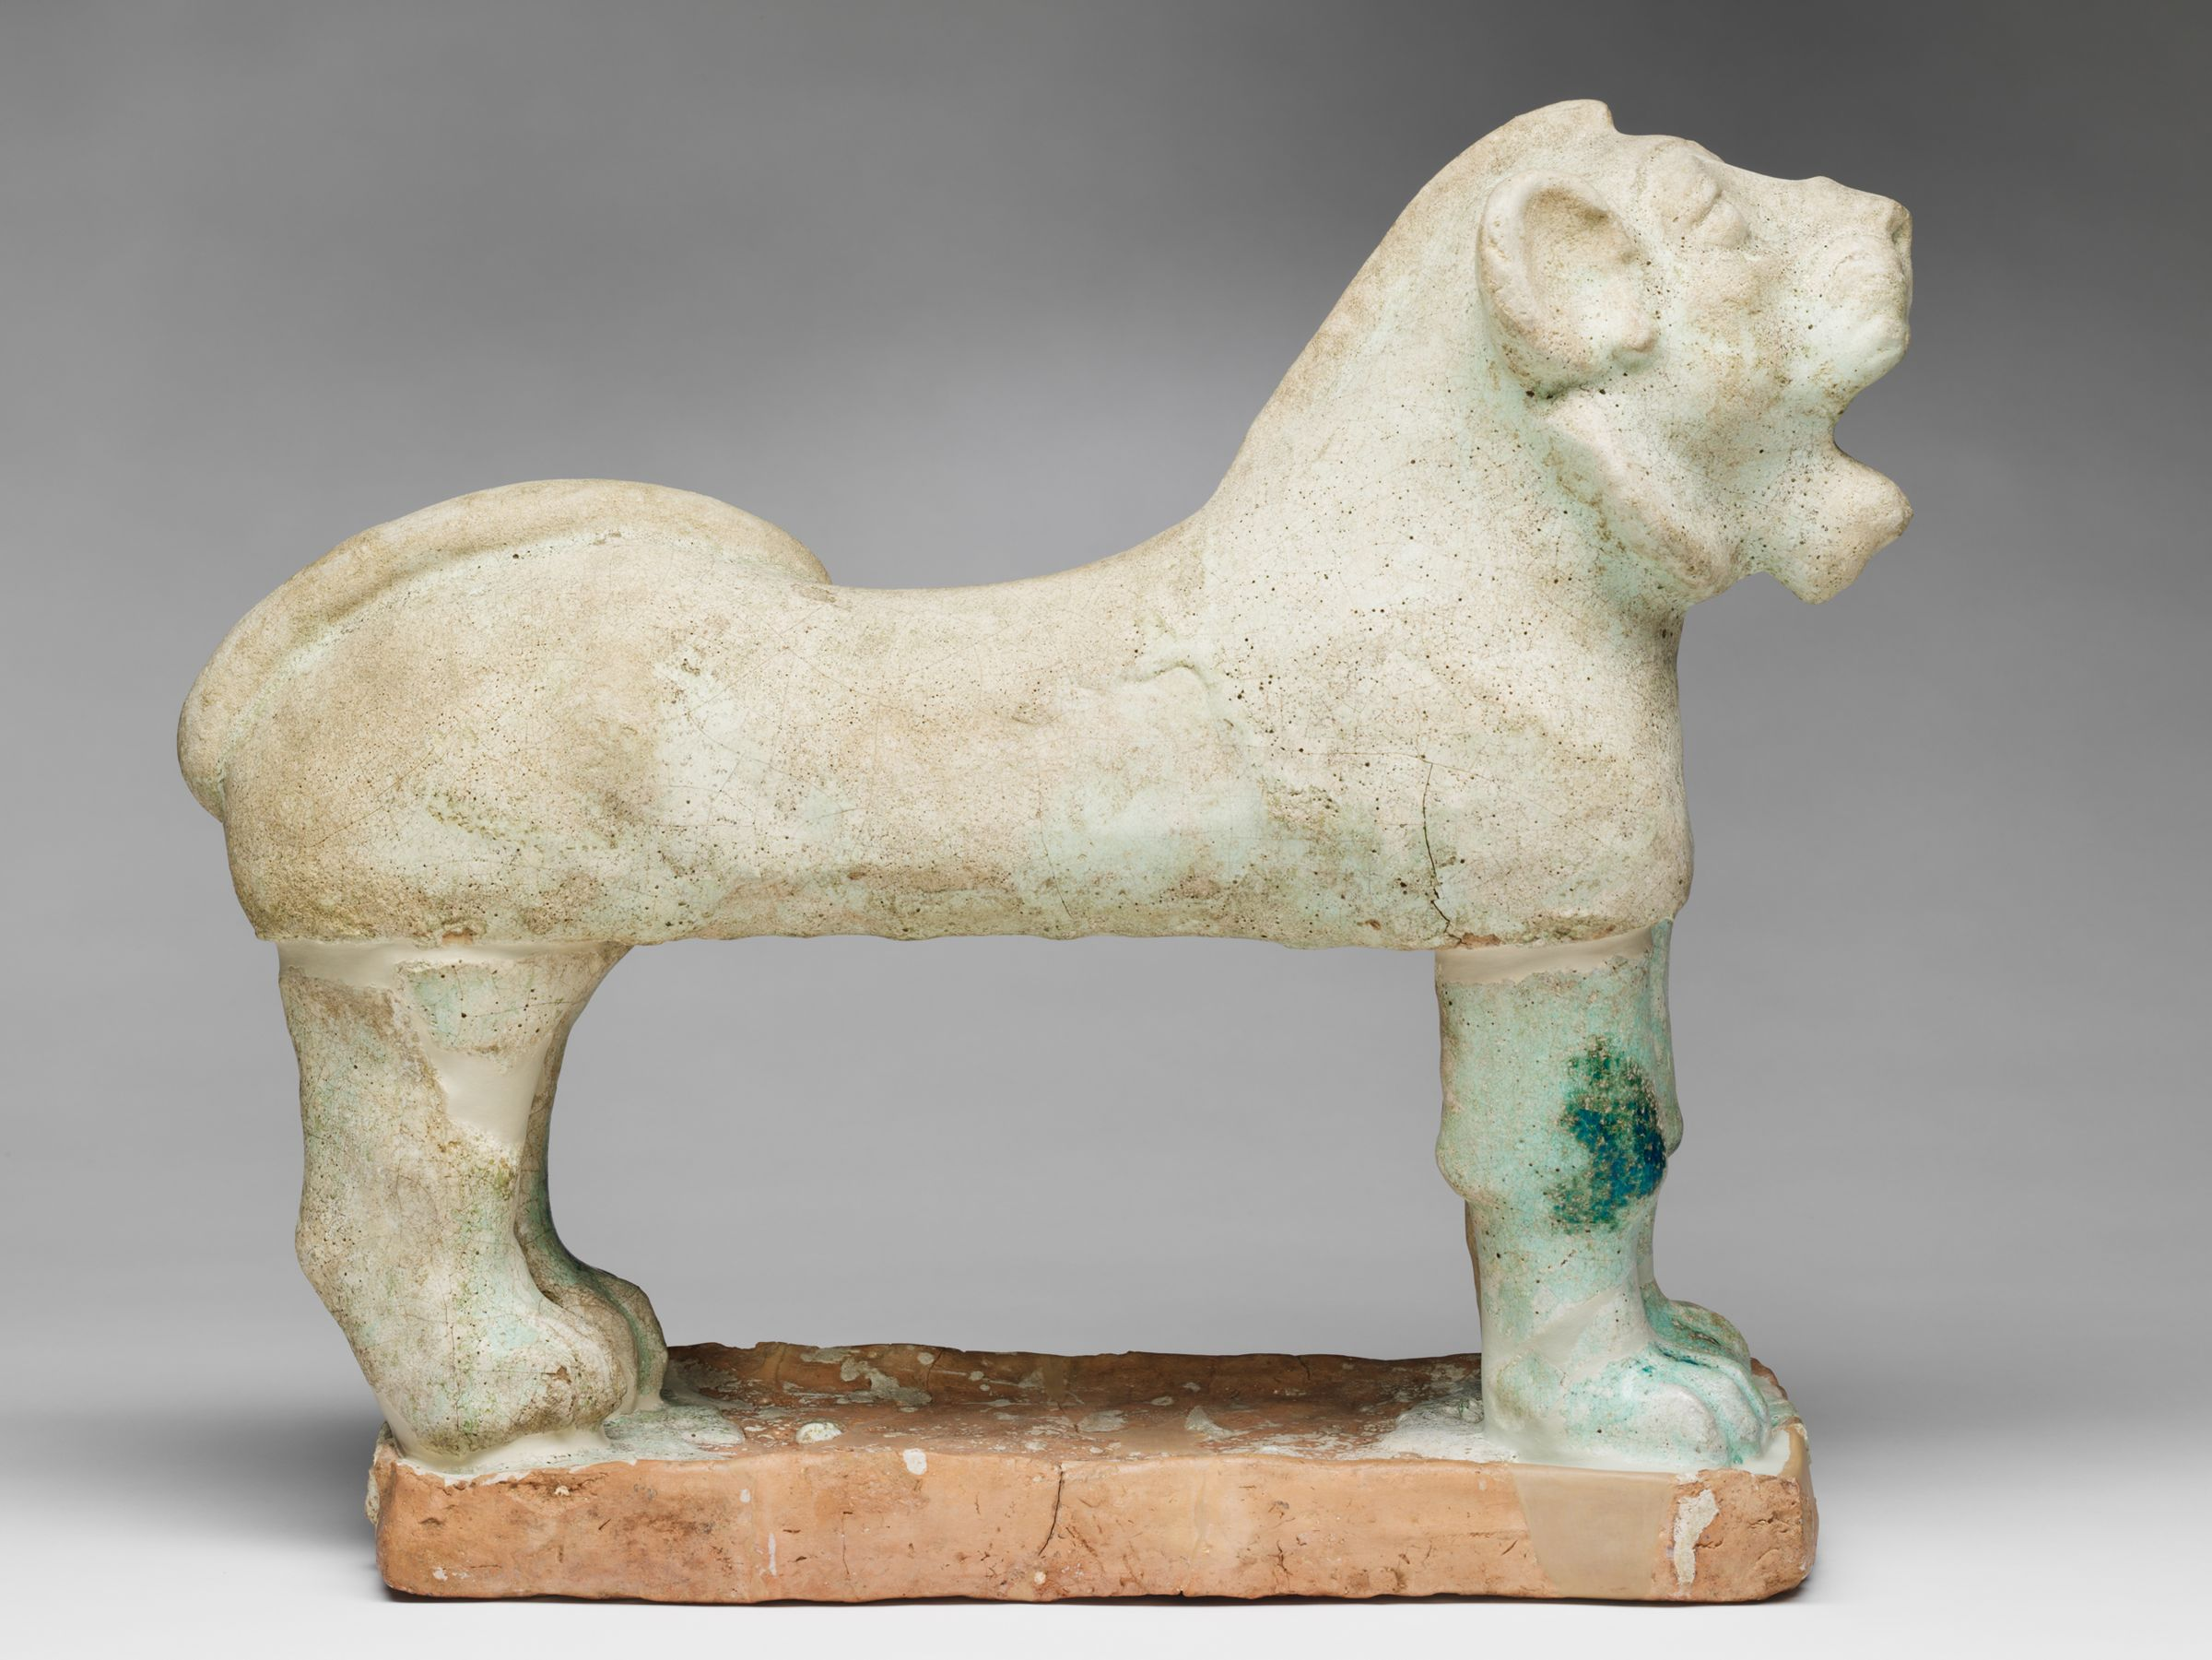 One Of Two Lions From The Temple Of Ishtar, Nuzi